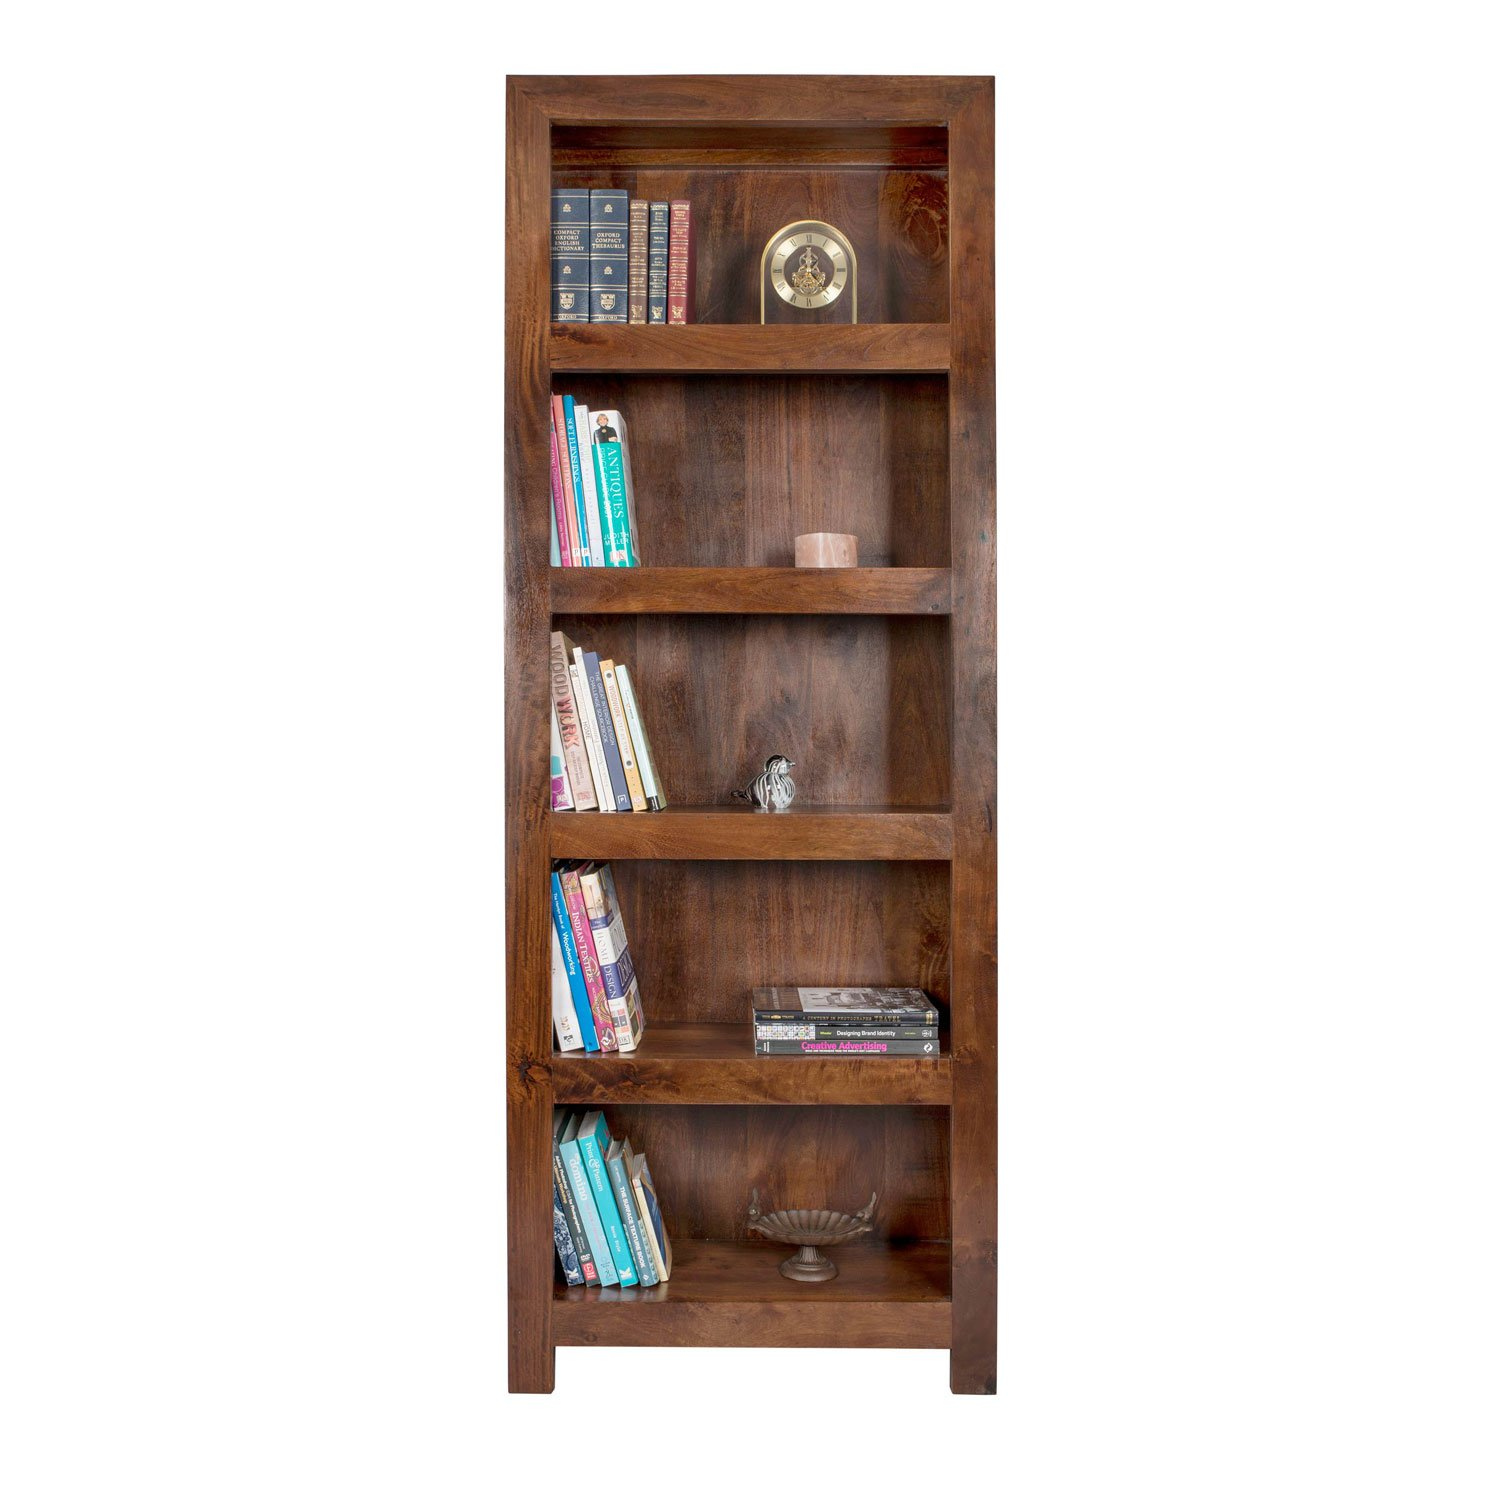 Homescapes - Dakota - Tall Bookcase 204 H x 76 W x 30 D cm - Dark - 100%  Solid Mango Hard Wood - ( No Veneer ) Hand Crafted Furniture: Amazon.co.uk:  Kitchen ... - Homescapes - Dakota - Tall Bookcase 204 H X 76 W X 30 D Cm - Dark